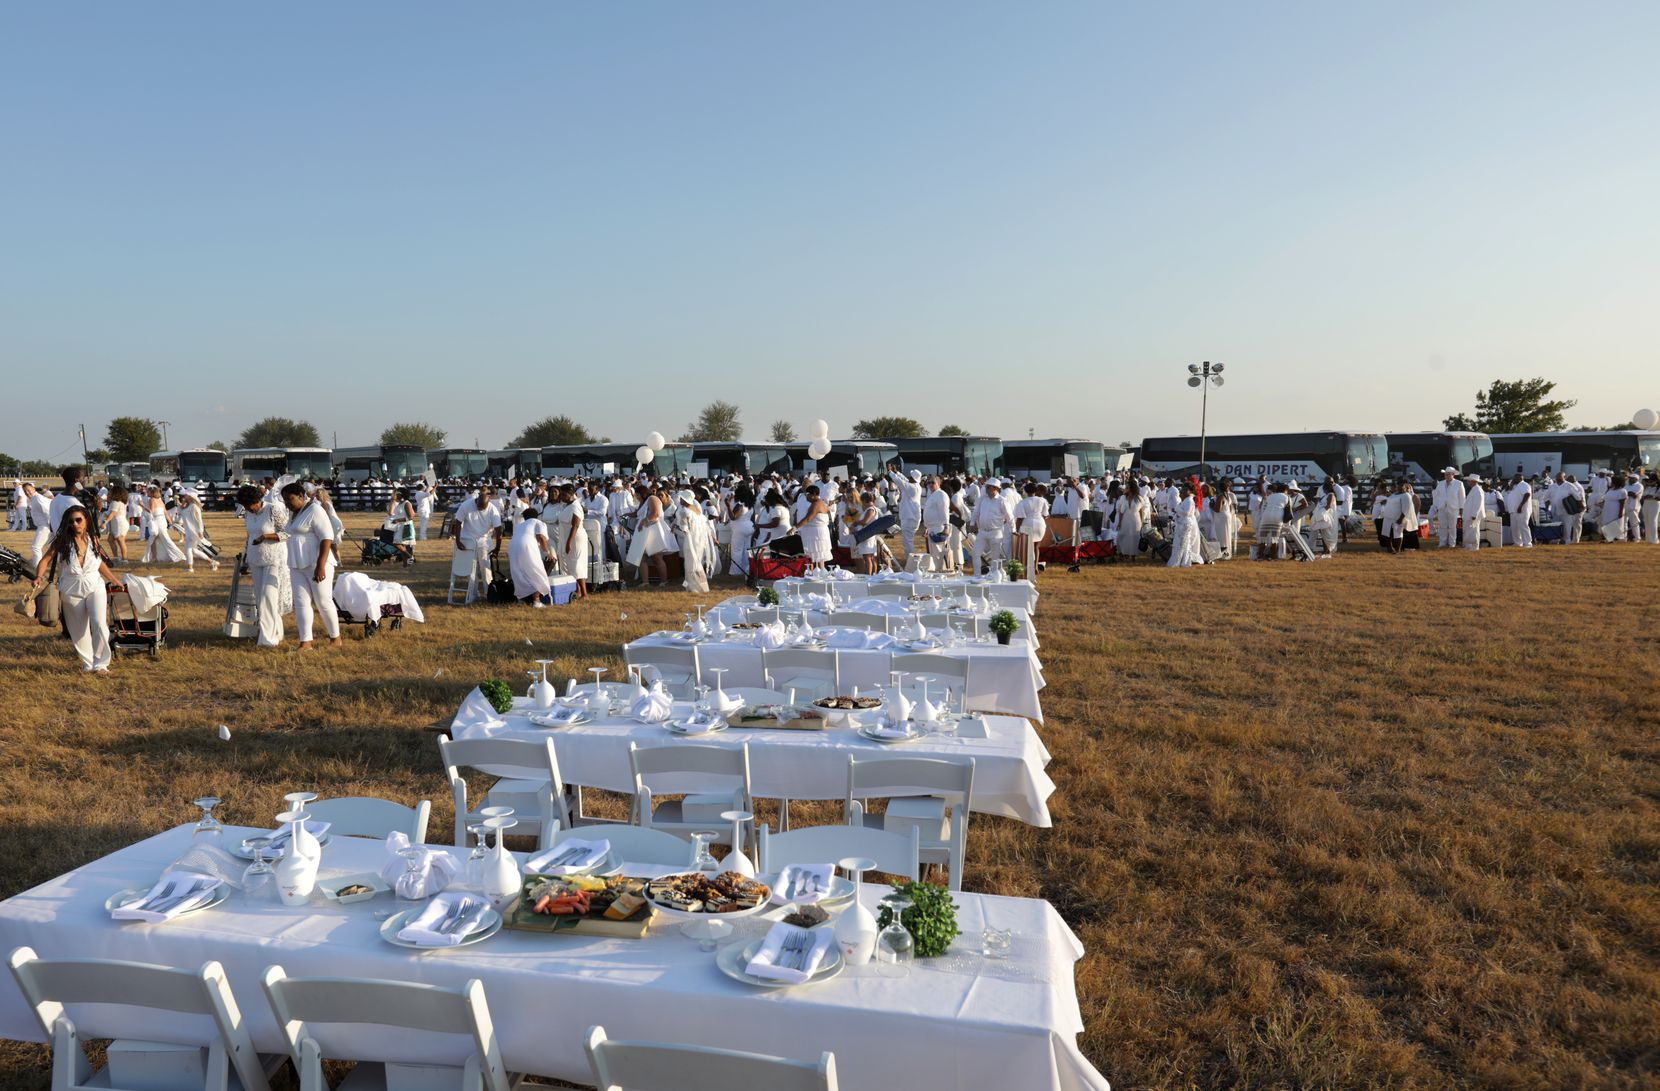 Participants prepare for the Diner en Blanc event at Southfork Ranch in Parker, TX, on Oct. 5, 2019. (Jason Janik/Special Contributor)